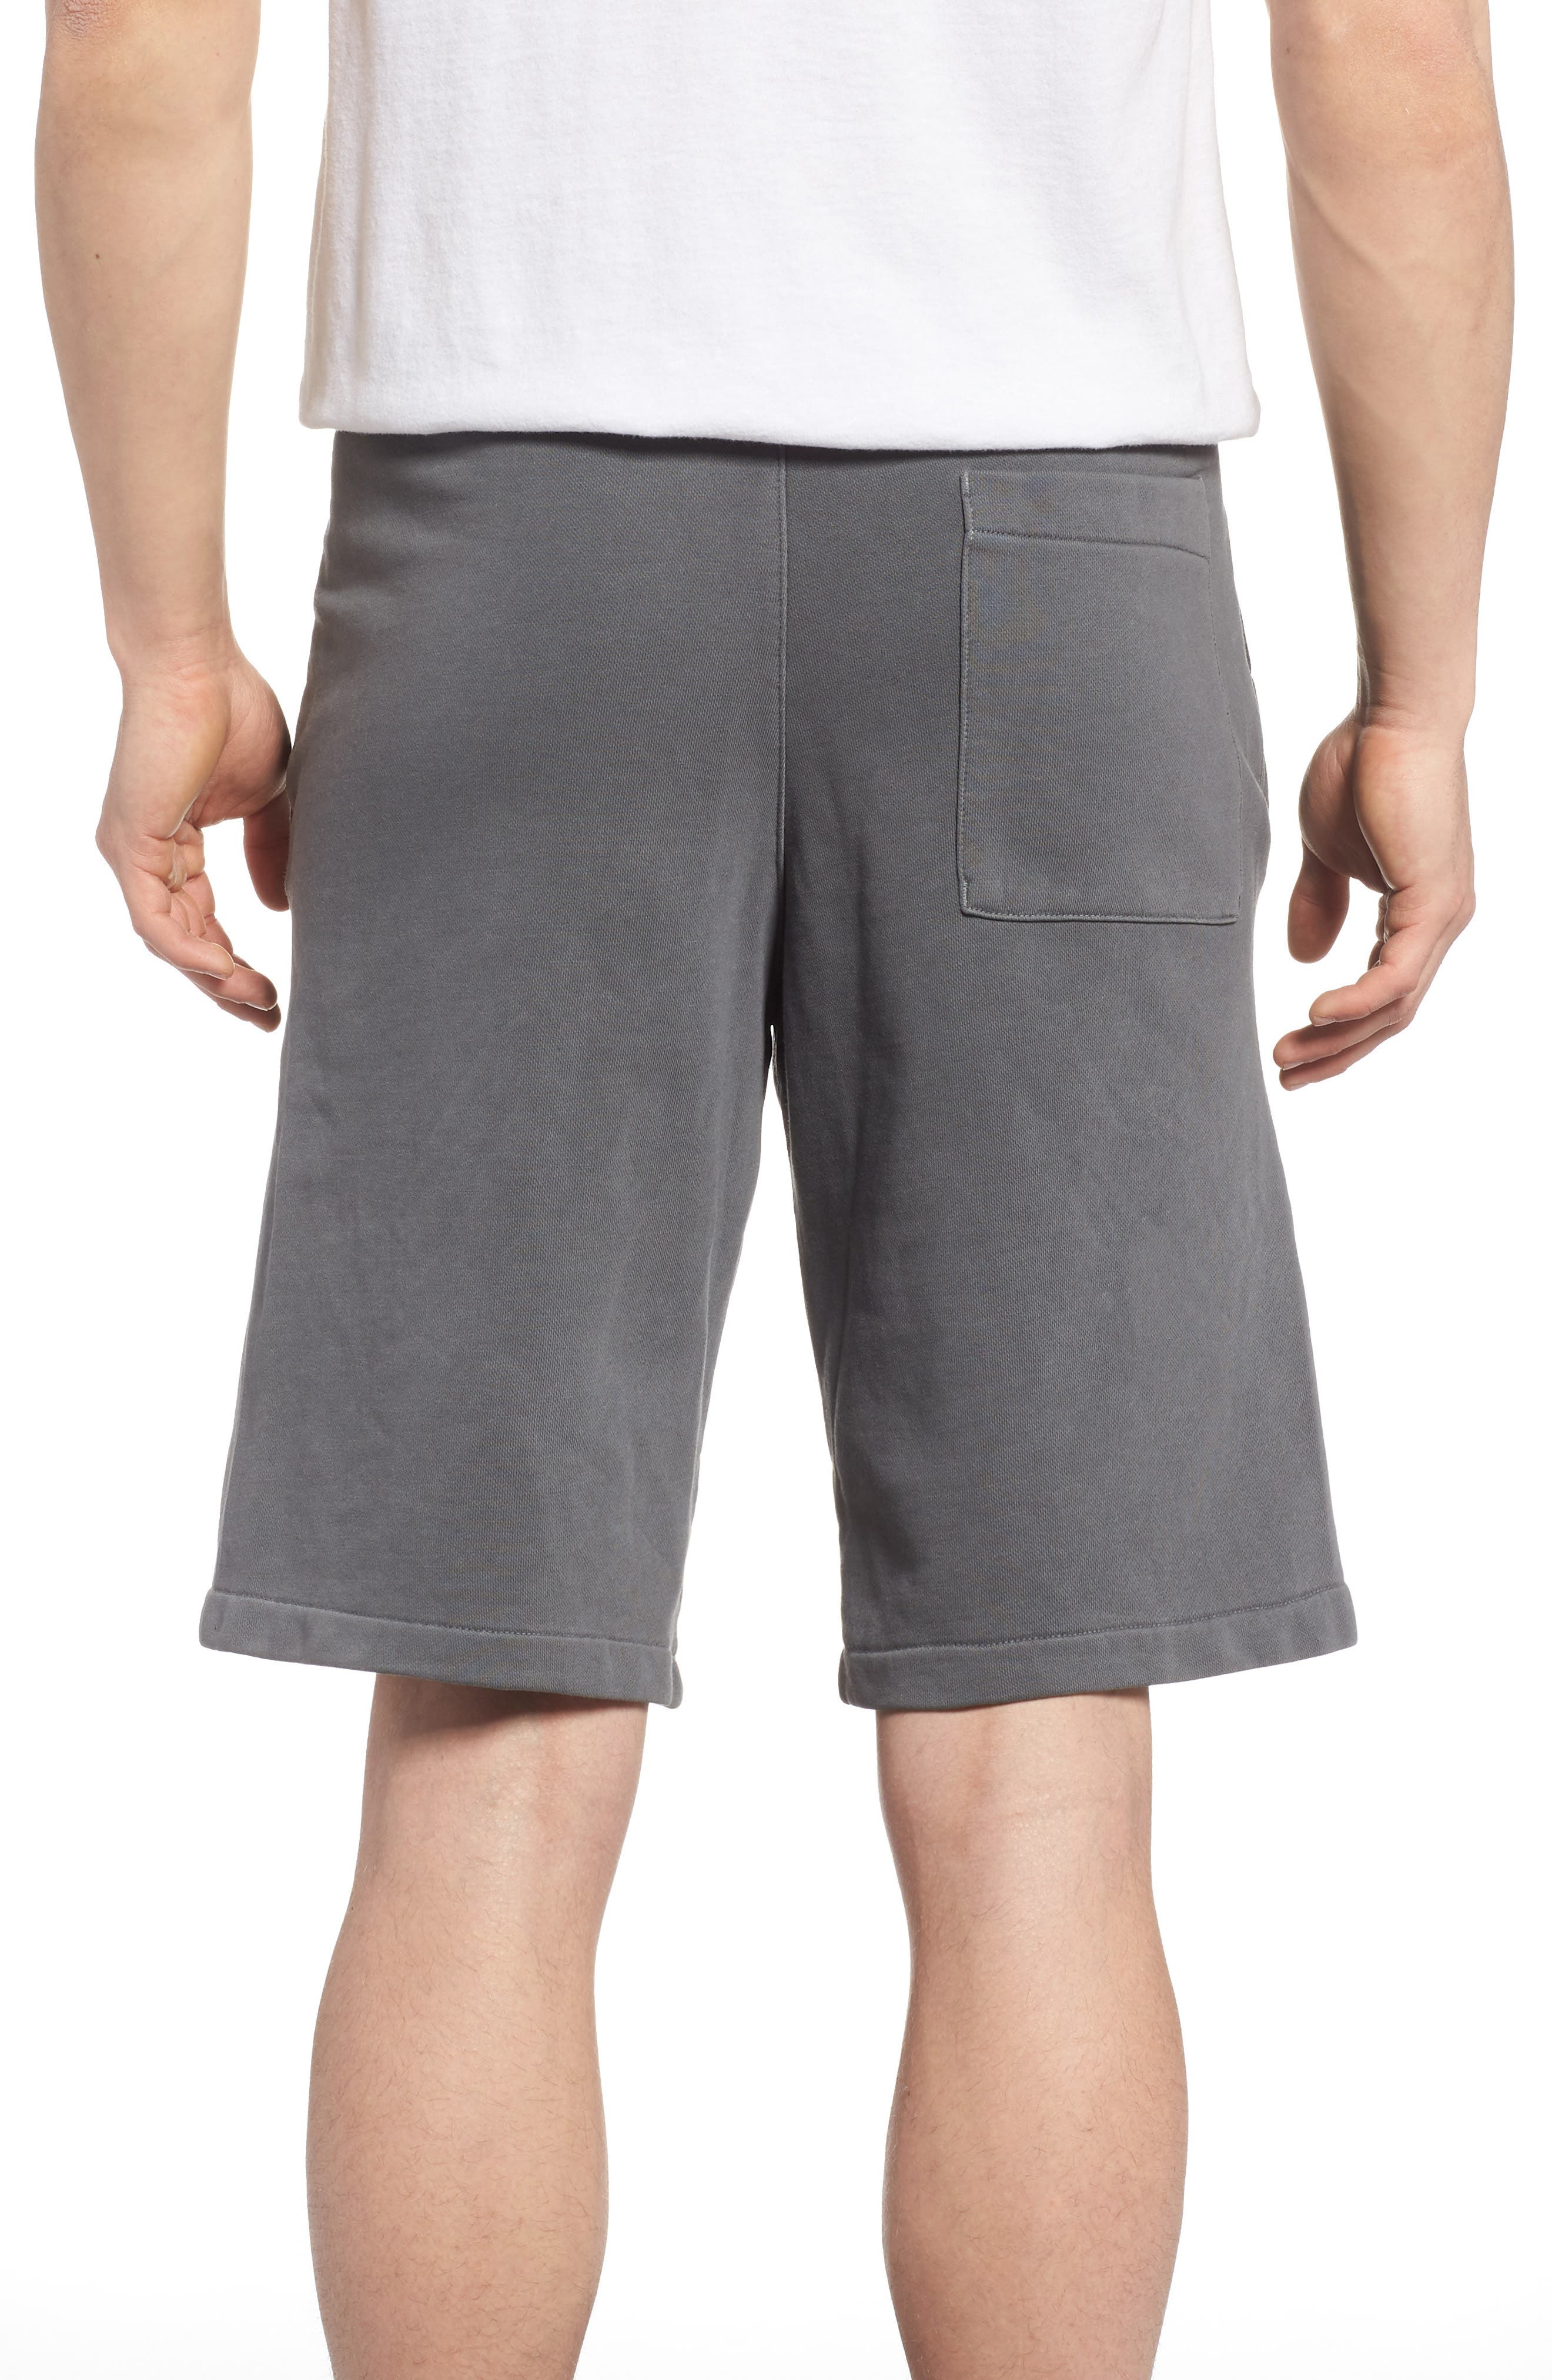 NSW Cotton Blend Shorts,                             Alternate thumbnail 2, color,                             Black/ Anthracite/ Cool Grey